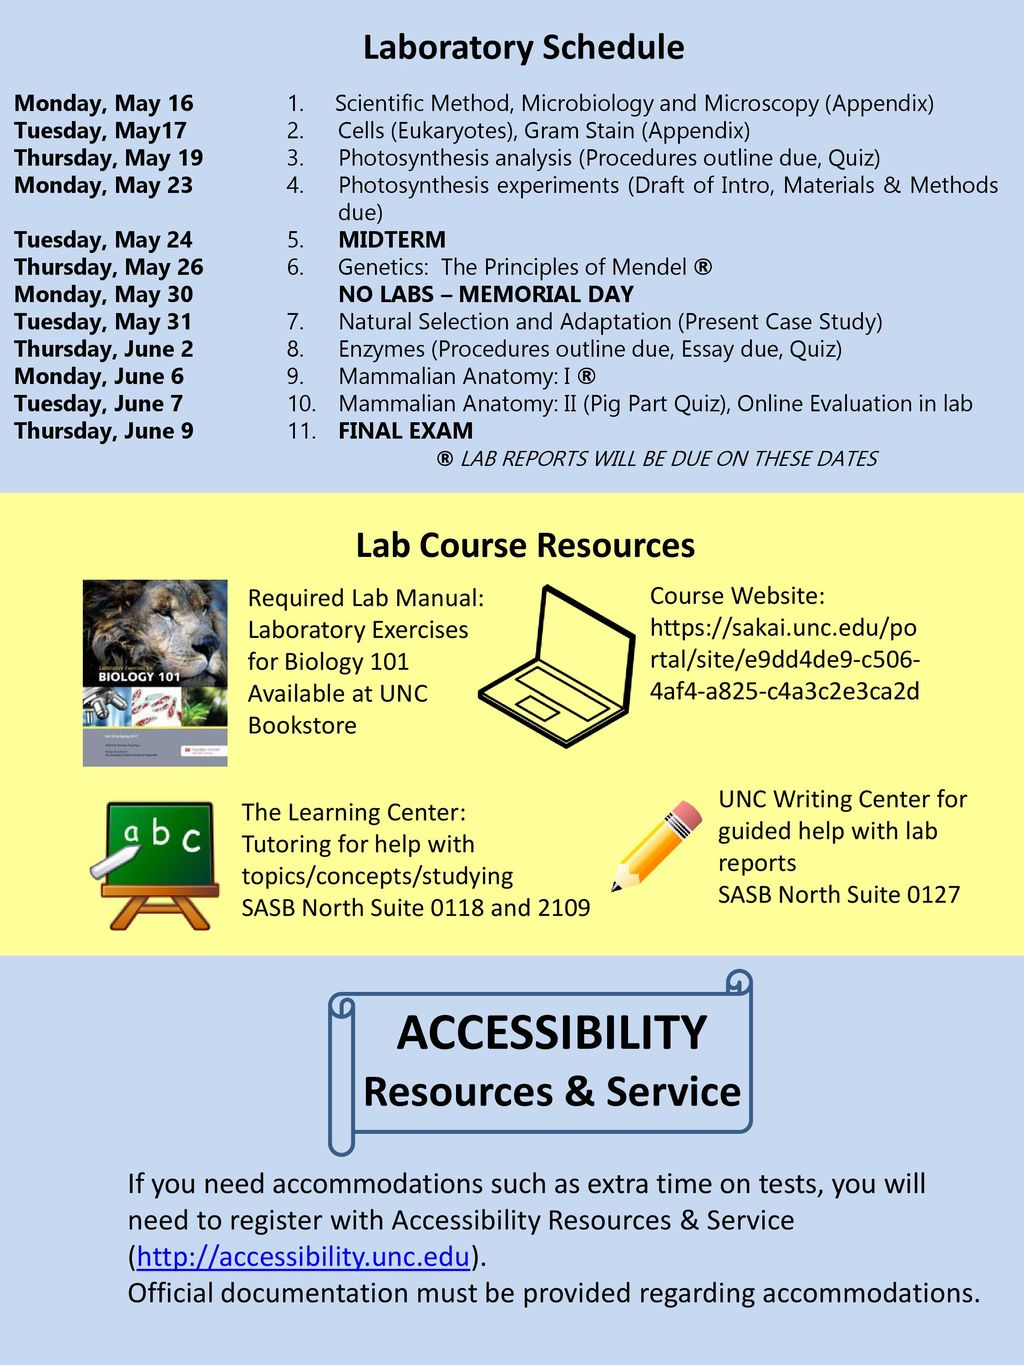 ACCESSIBILITY Resources & Service Laboratory Schedule